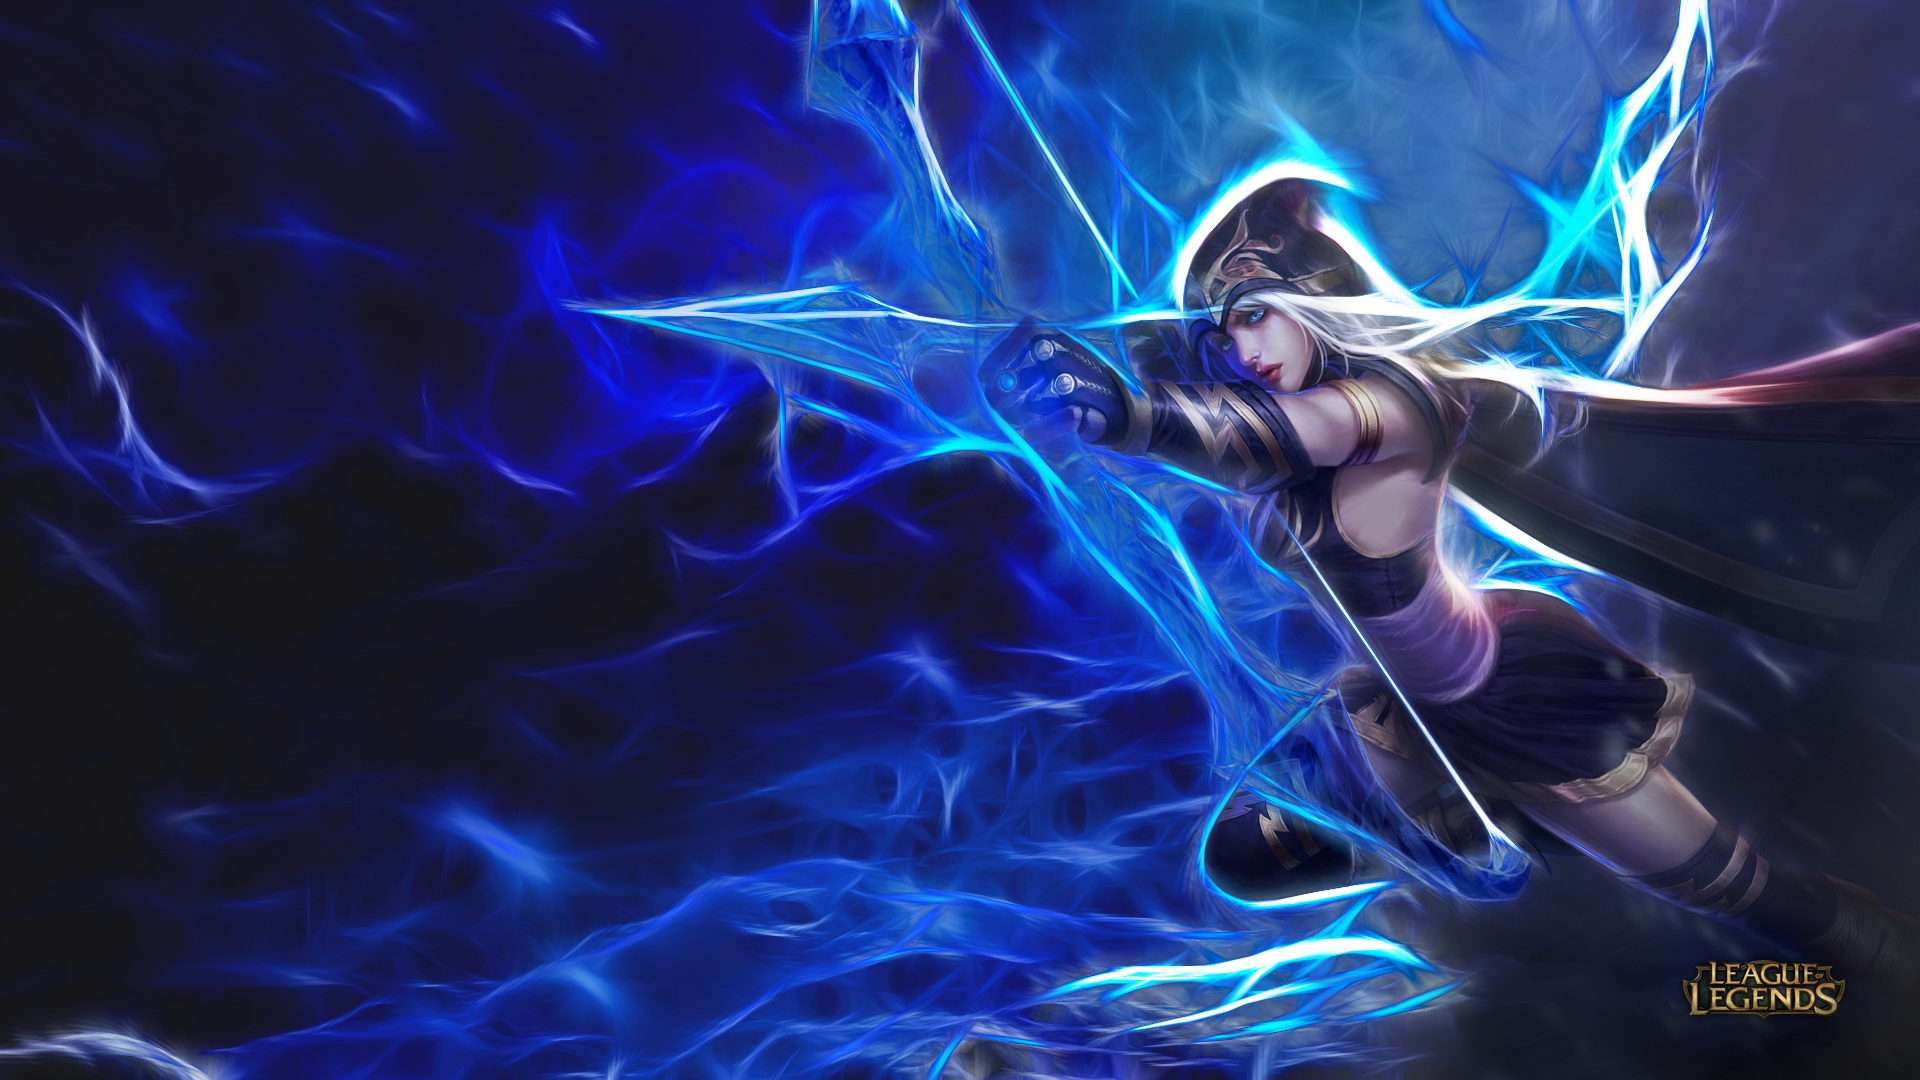 Poppy Wallpaper For Iphone Ashe League Of Legends Archer Artistic Hd Wallpapers For